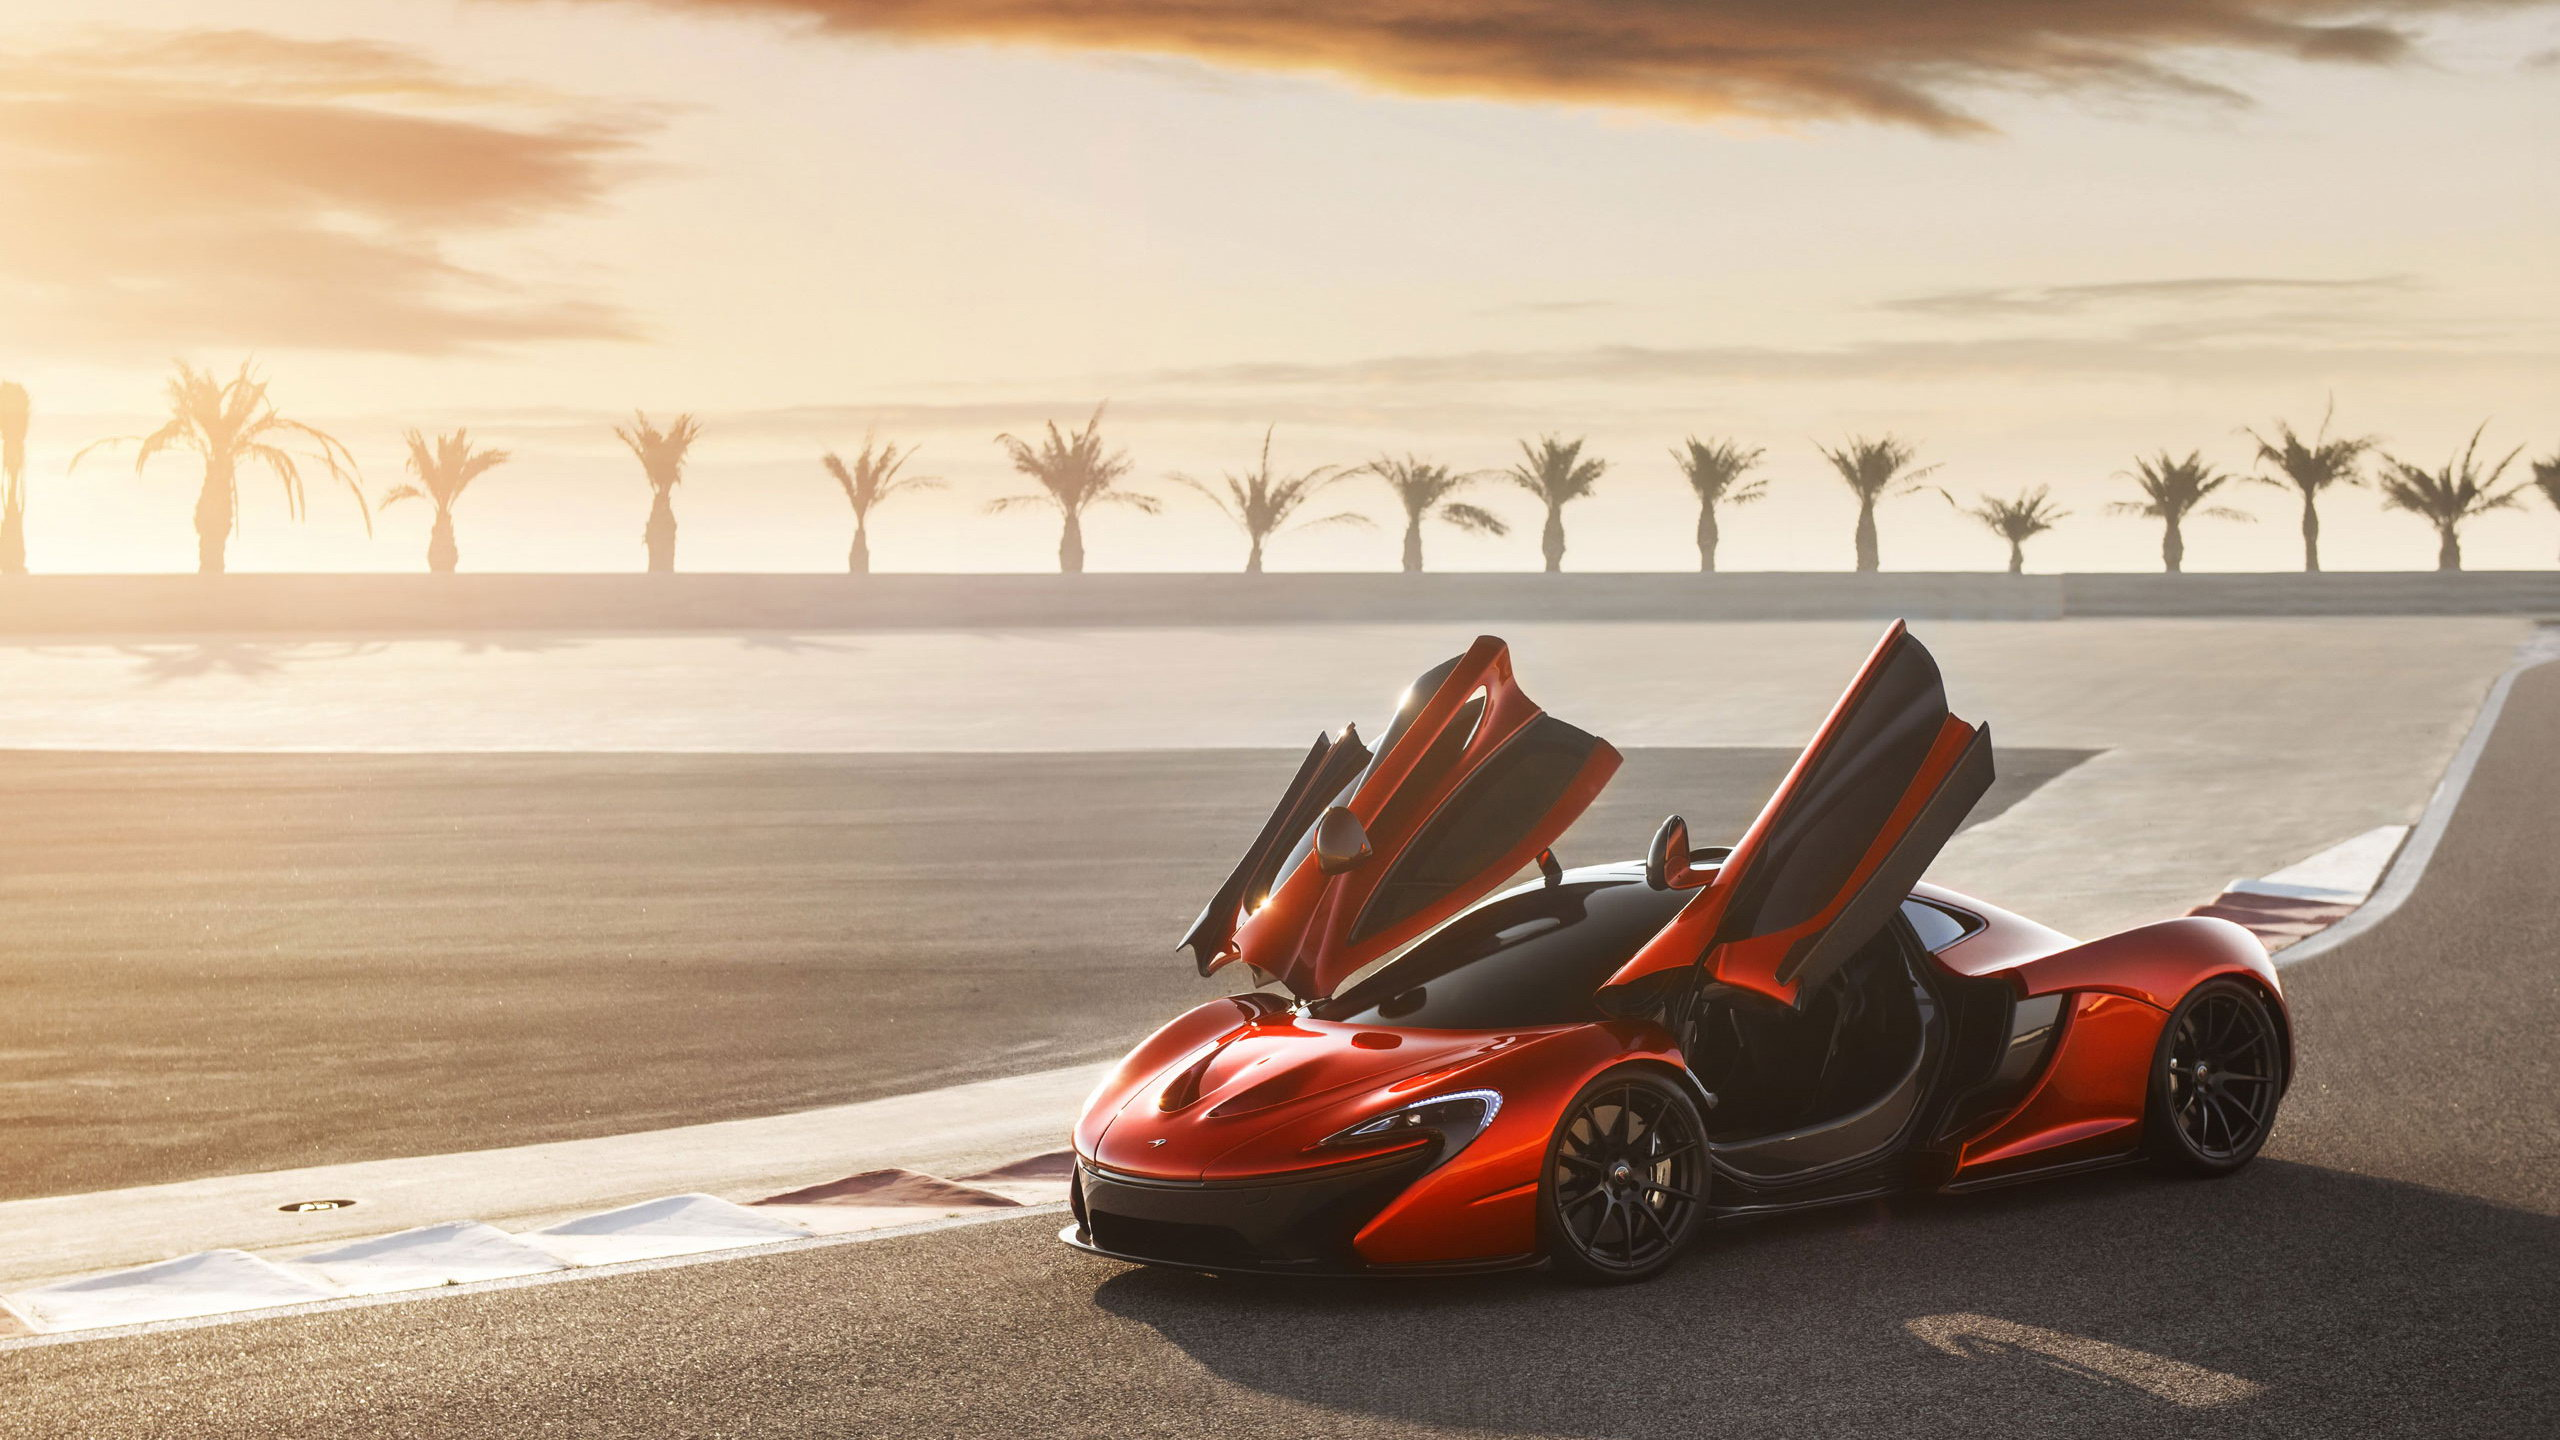 mclaren p1 supercar hd, hd cars, 4k wallpapers, images, backgrounds